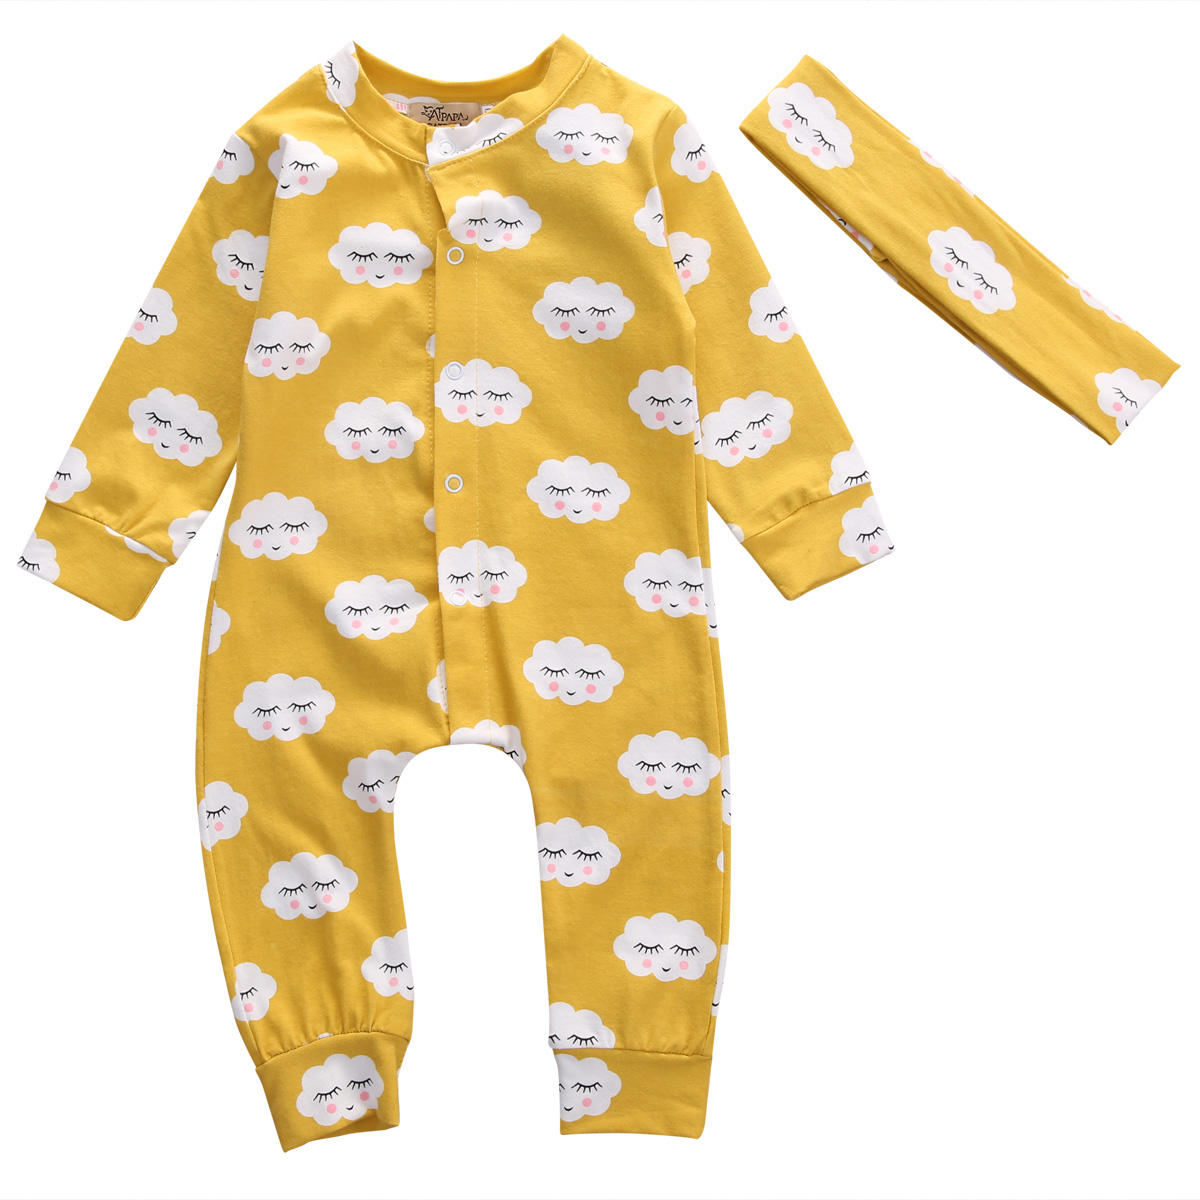 Newborn Infant Baby Kids Girls Clothes Cute Cloud Print Yellow Jumpsuit Long Sleeve Romper Casual Outfits Set